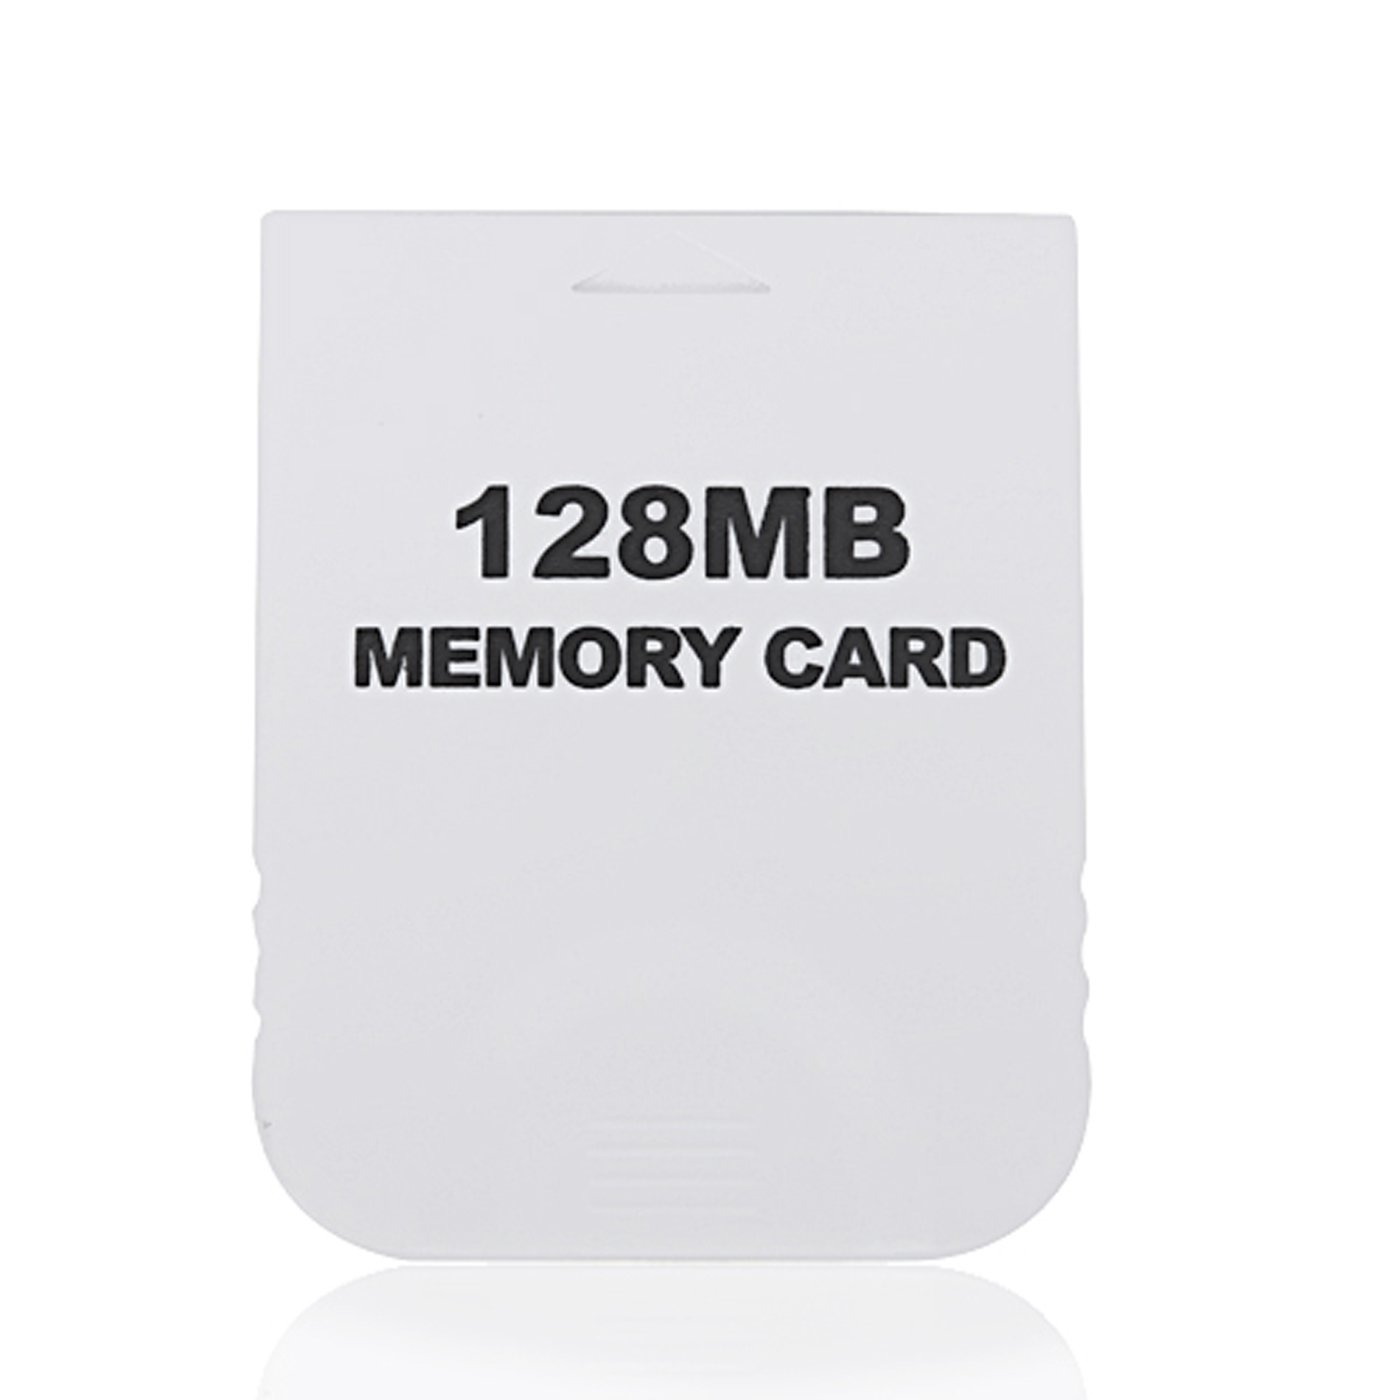 HDE 128MB (2048 Blocks) White Memory Card for Nintendo GameCube or Wii Consoles